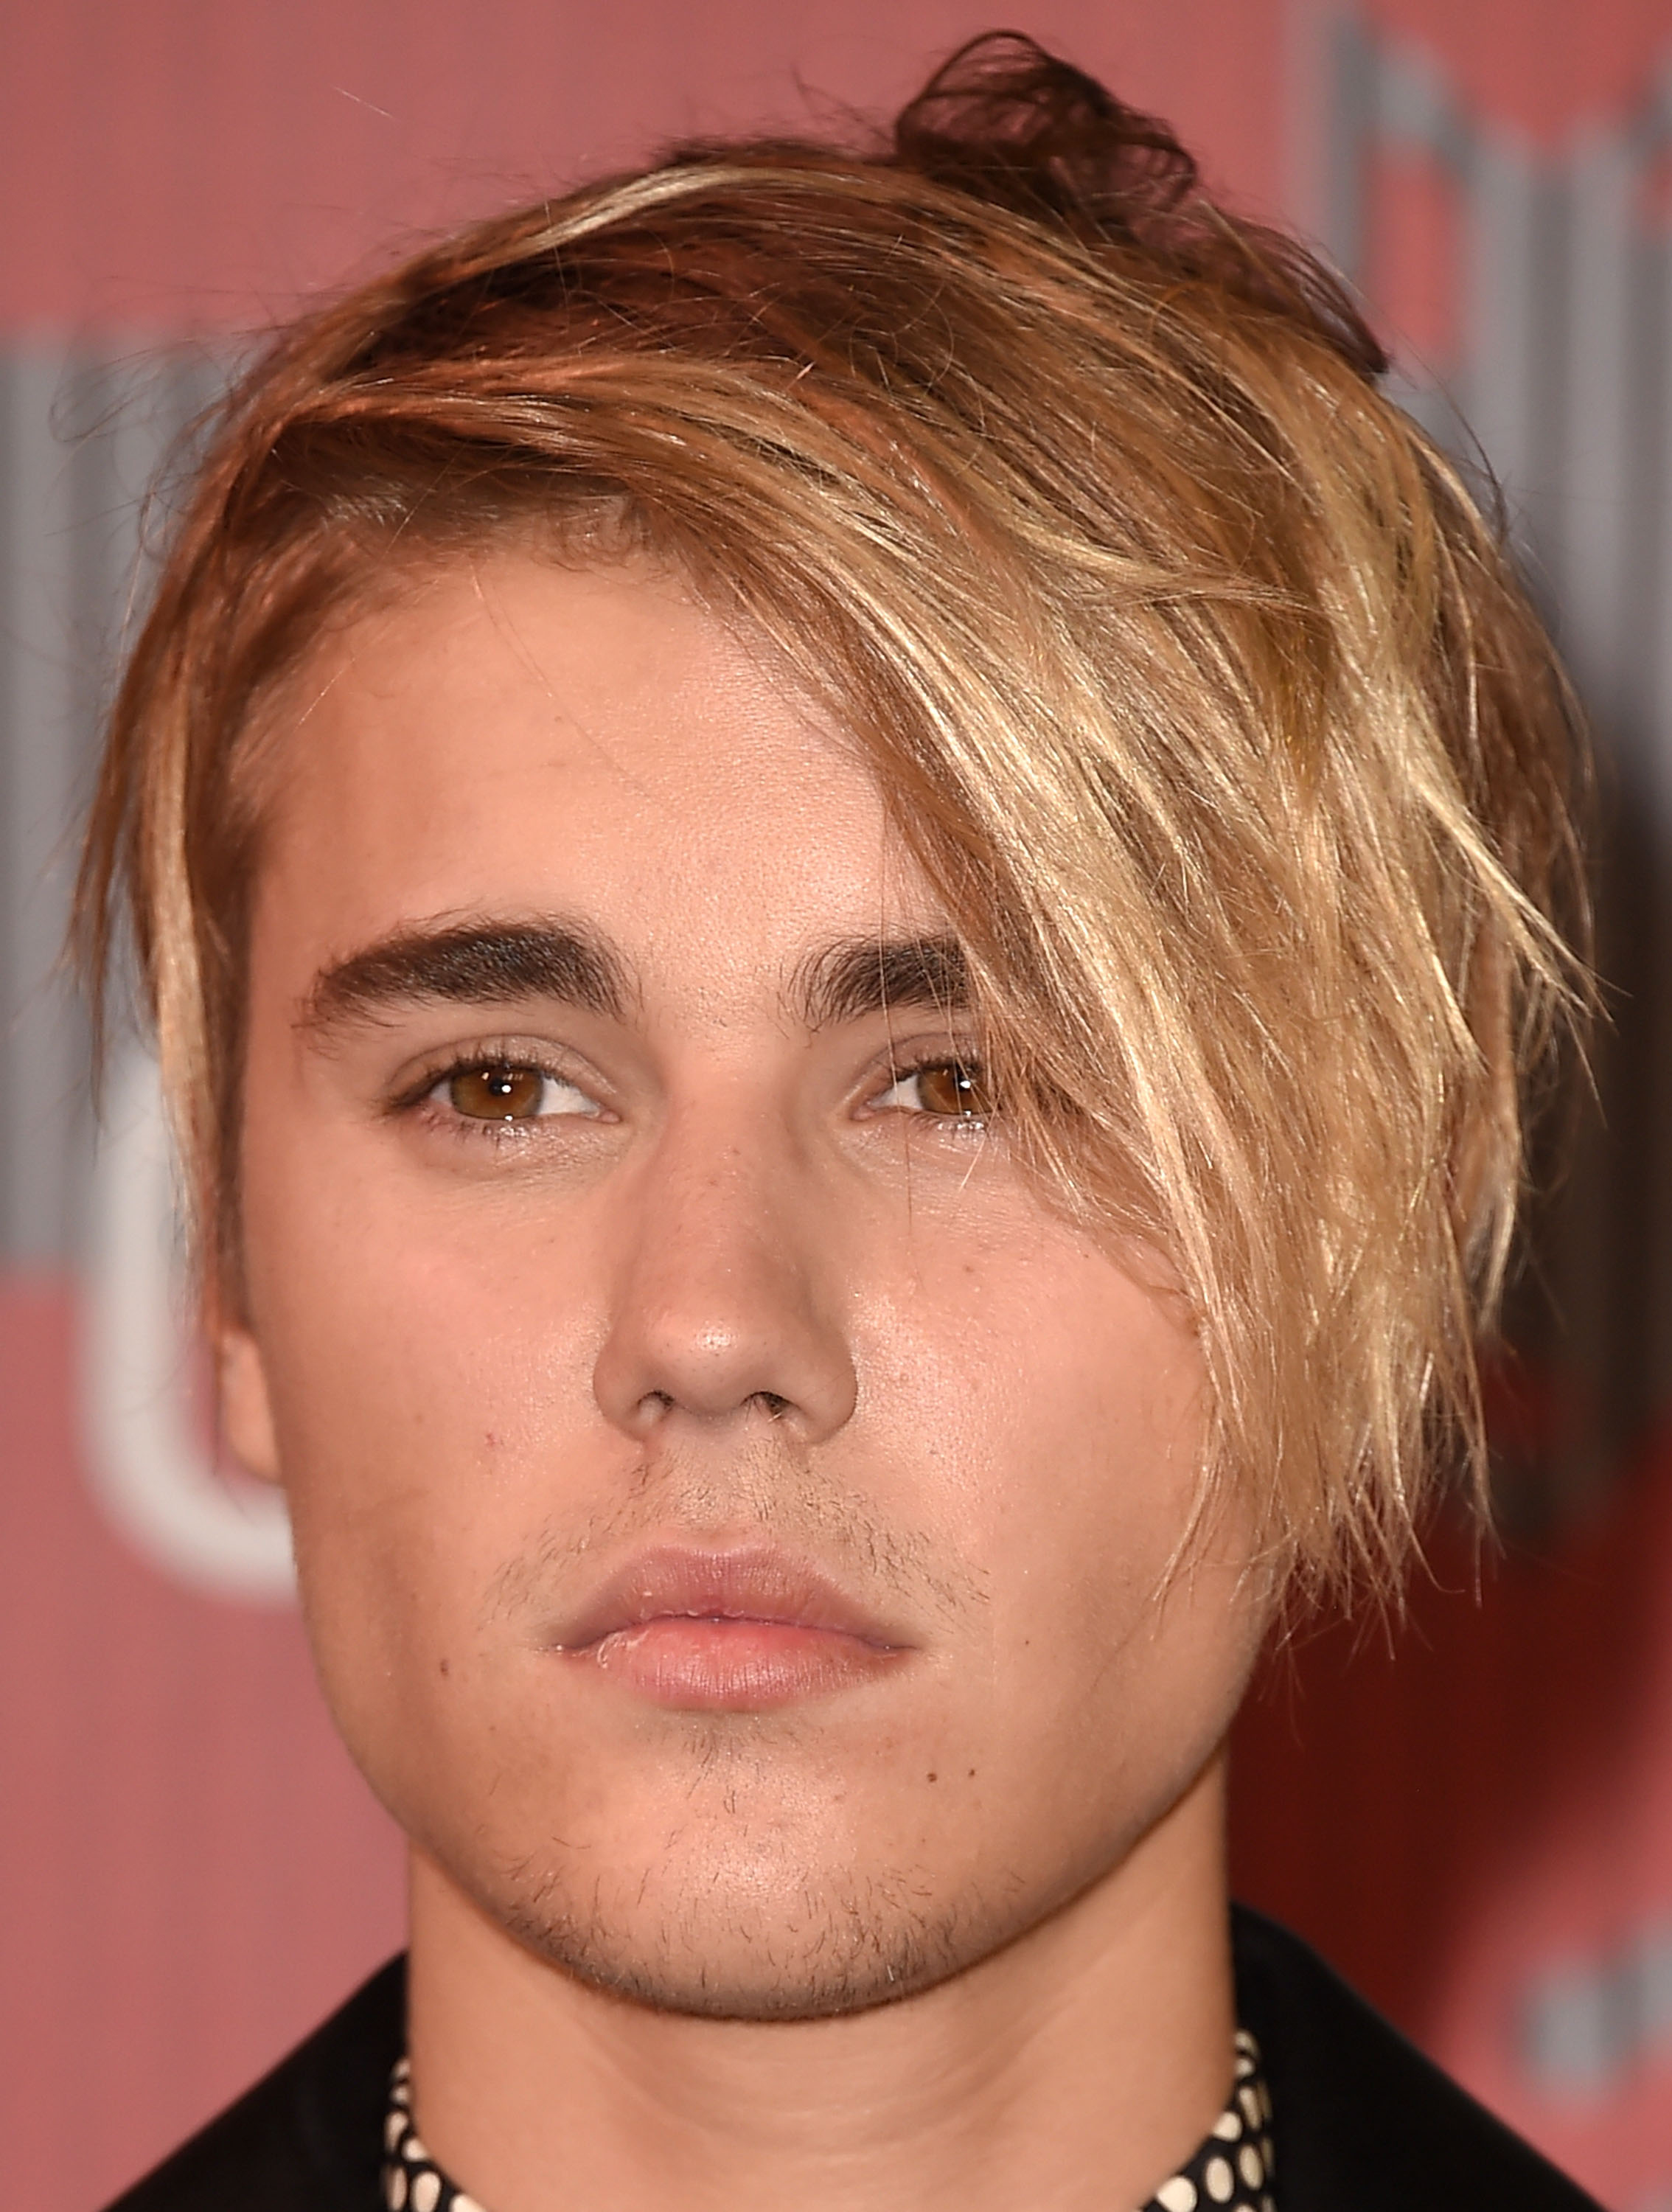 Justin bieber real hair color book covers